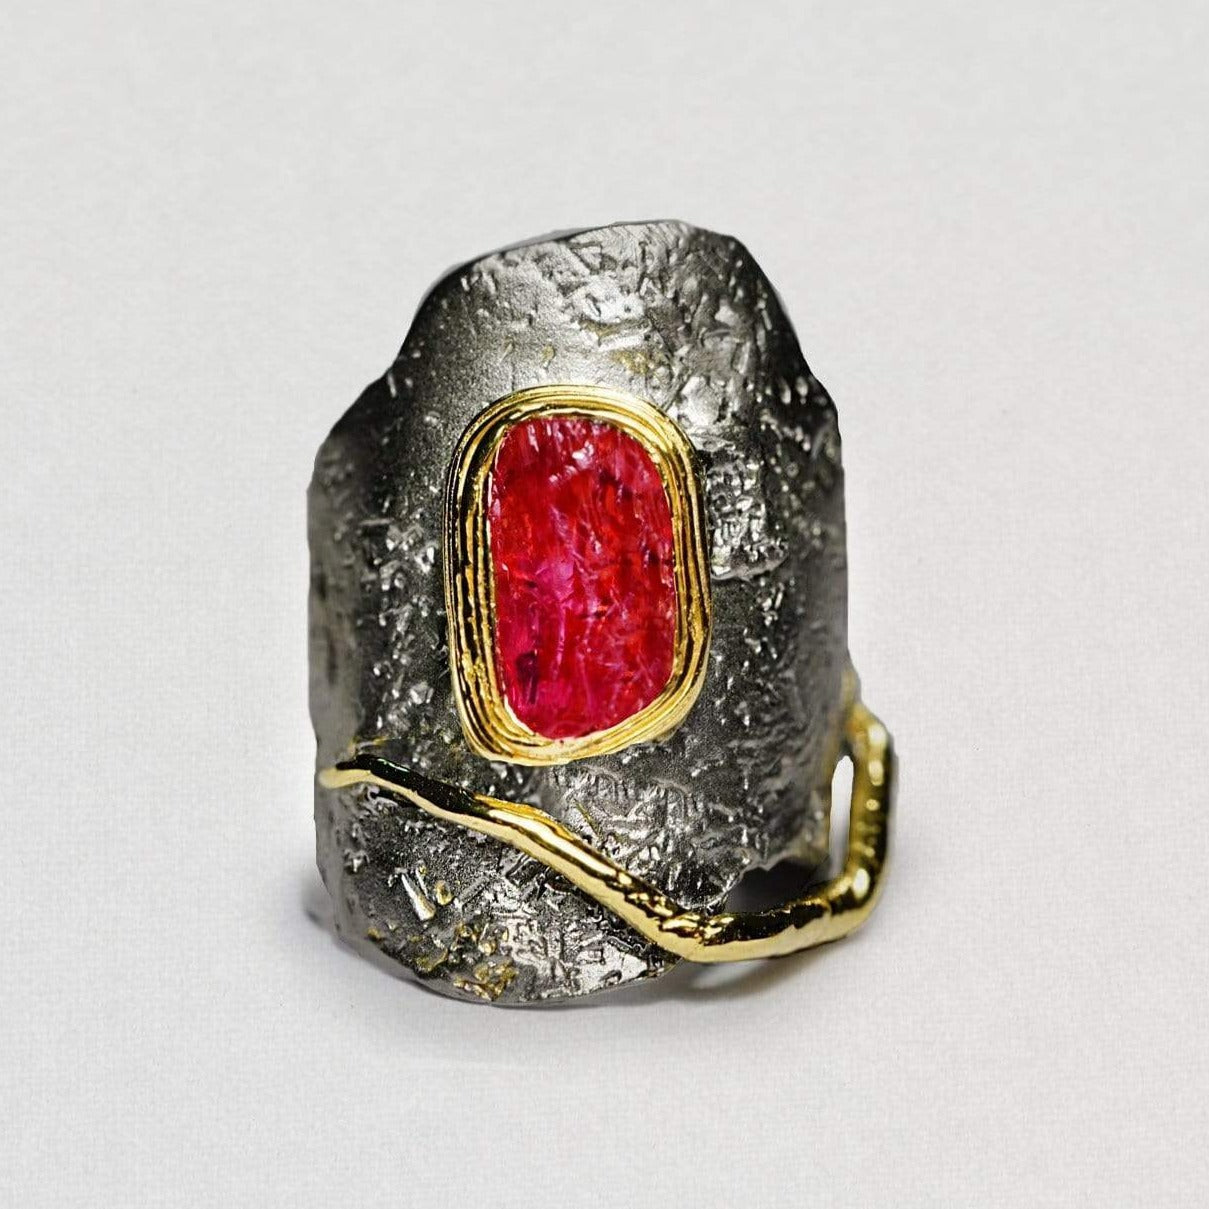 Veturia Ring, Gold, gray, Handmade, Rhodium, Ruby, spo-disabled, StoneColor:PinkRuby, Style:Everyday, Type:StoneCandyWired Ring